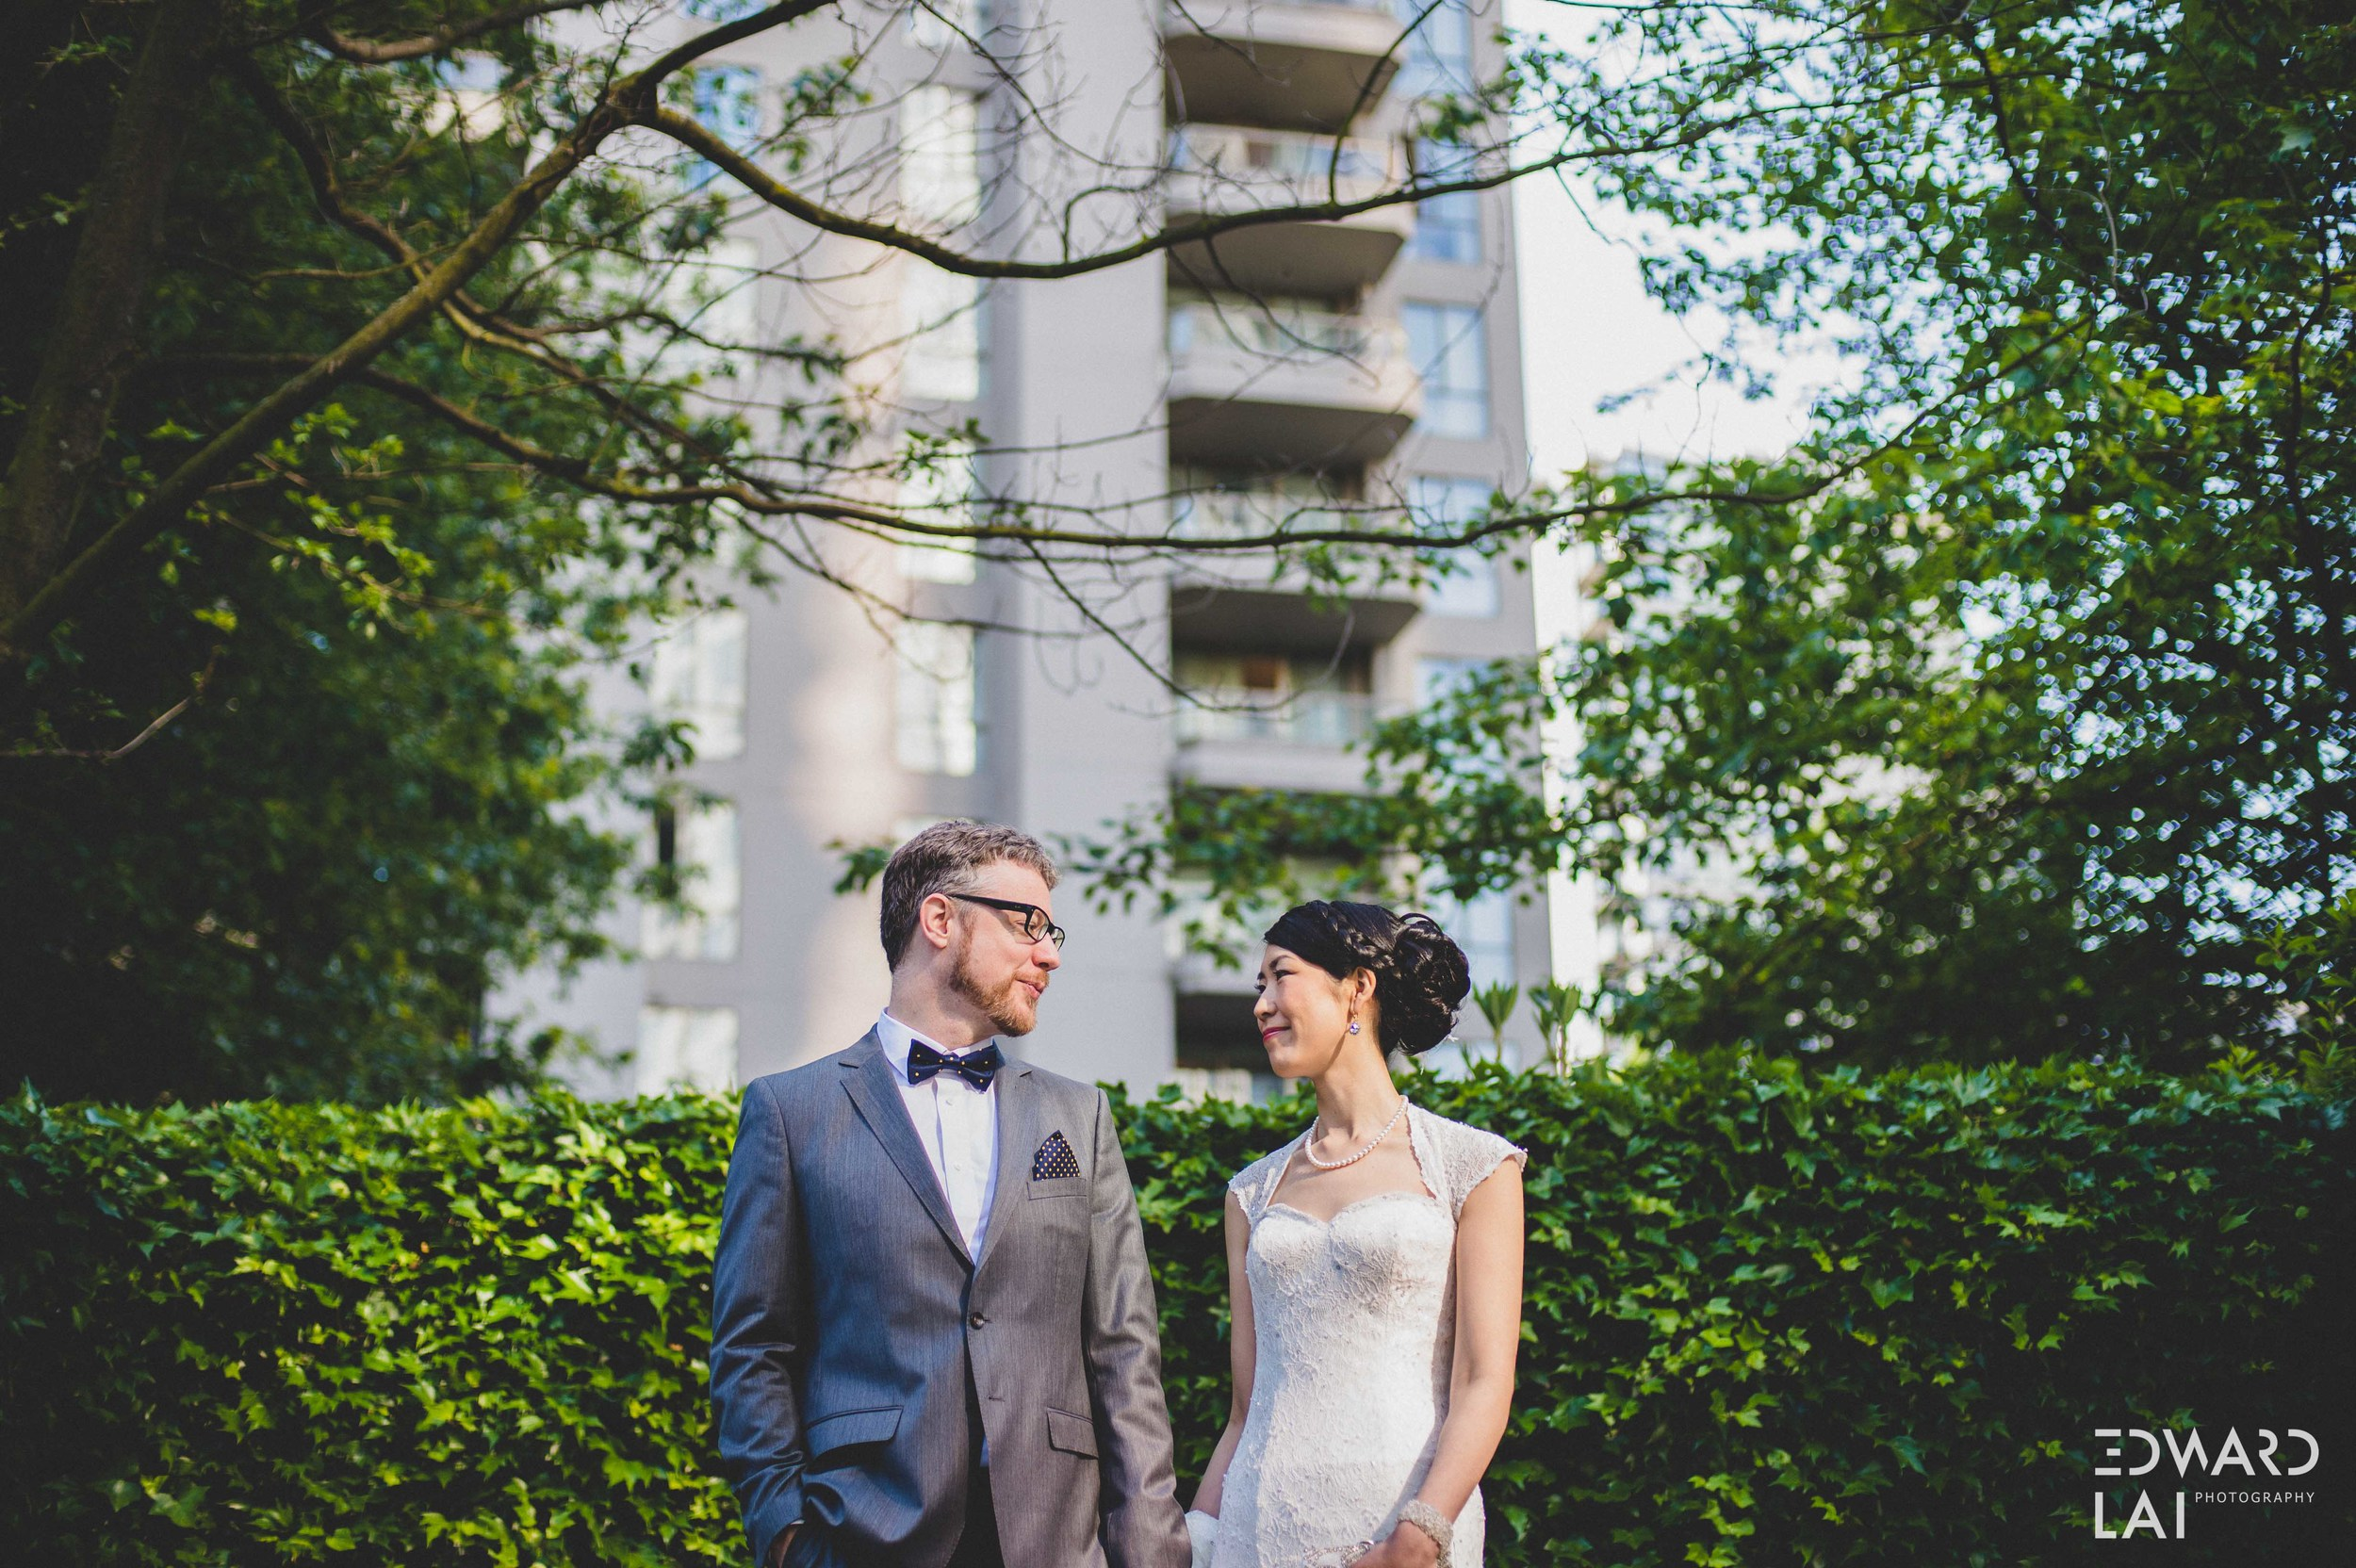 vancouver Brockhouse wedding photographer edward lai-3.jpg